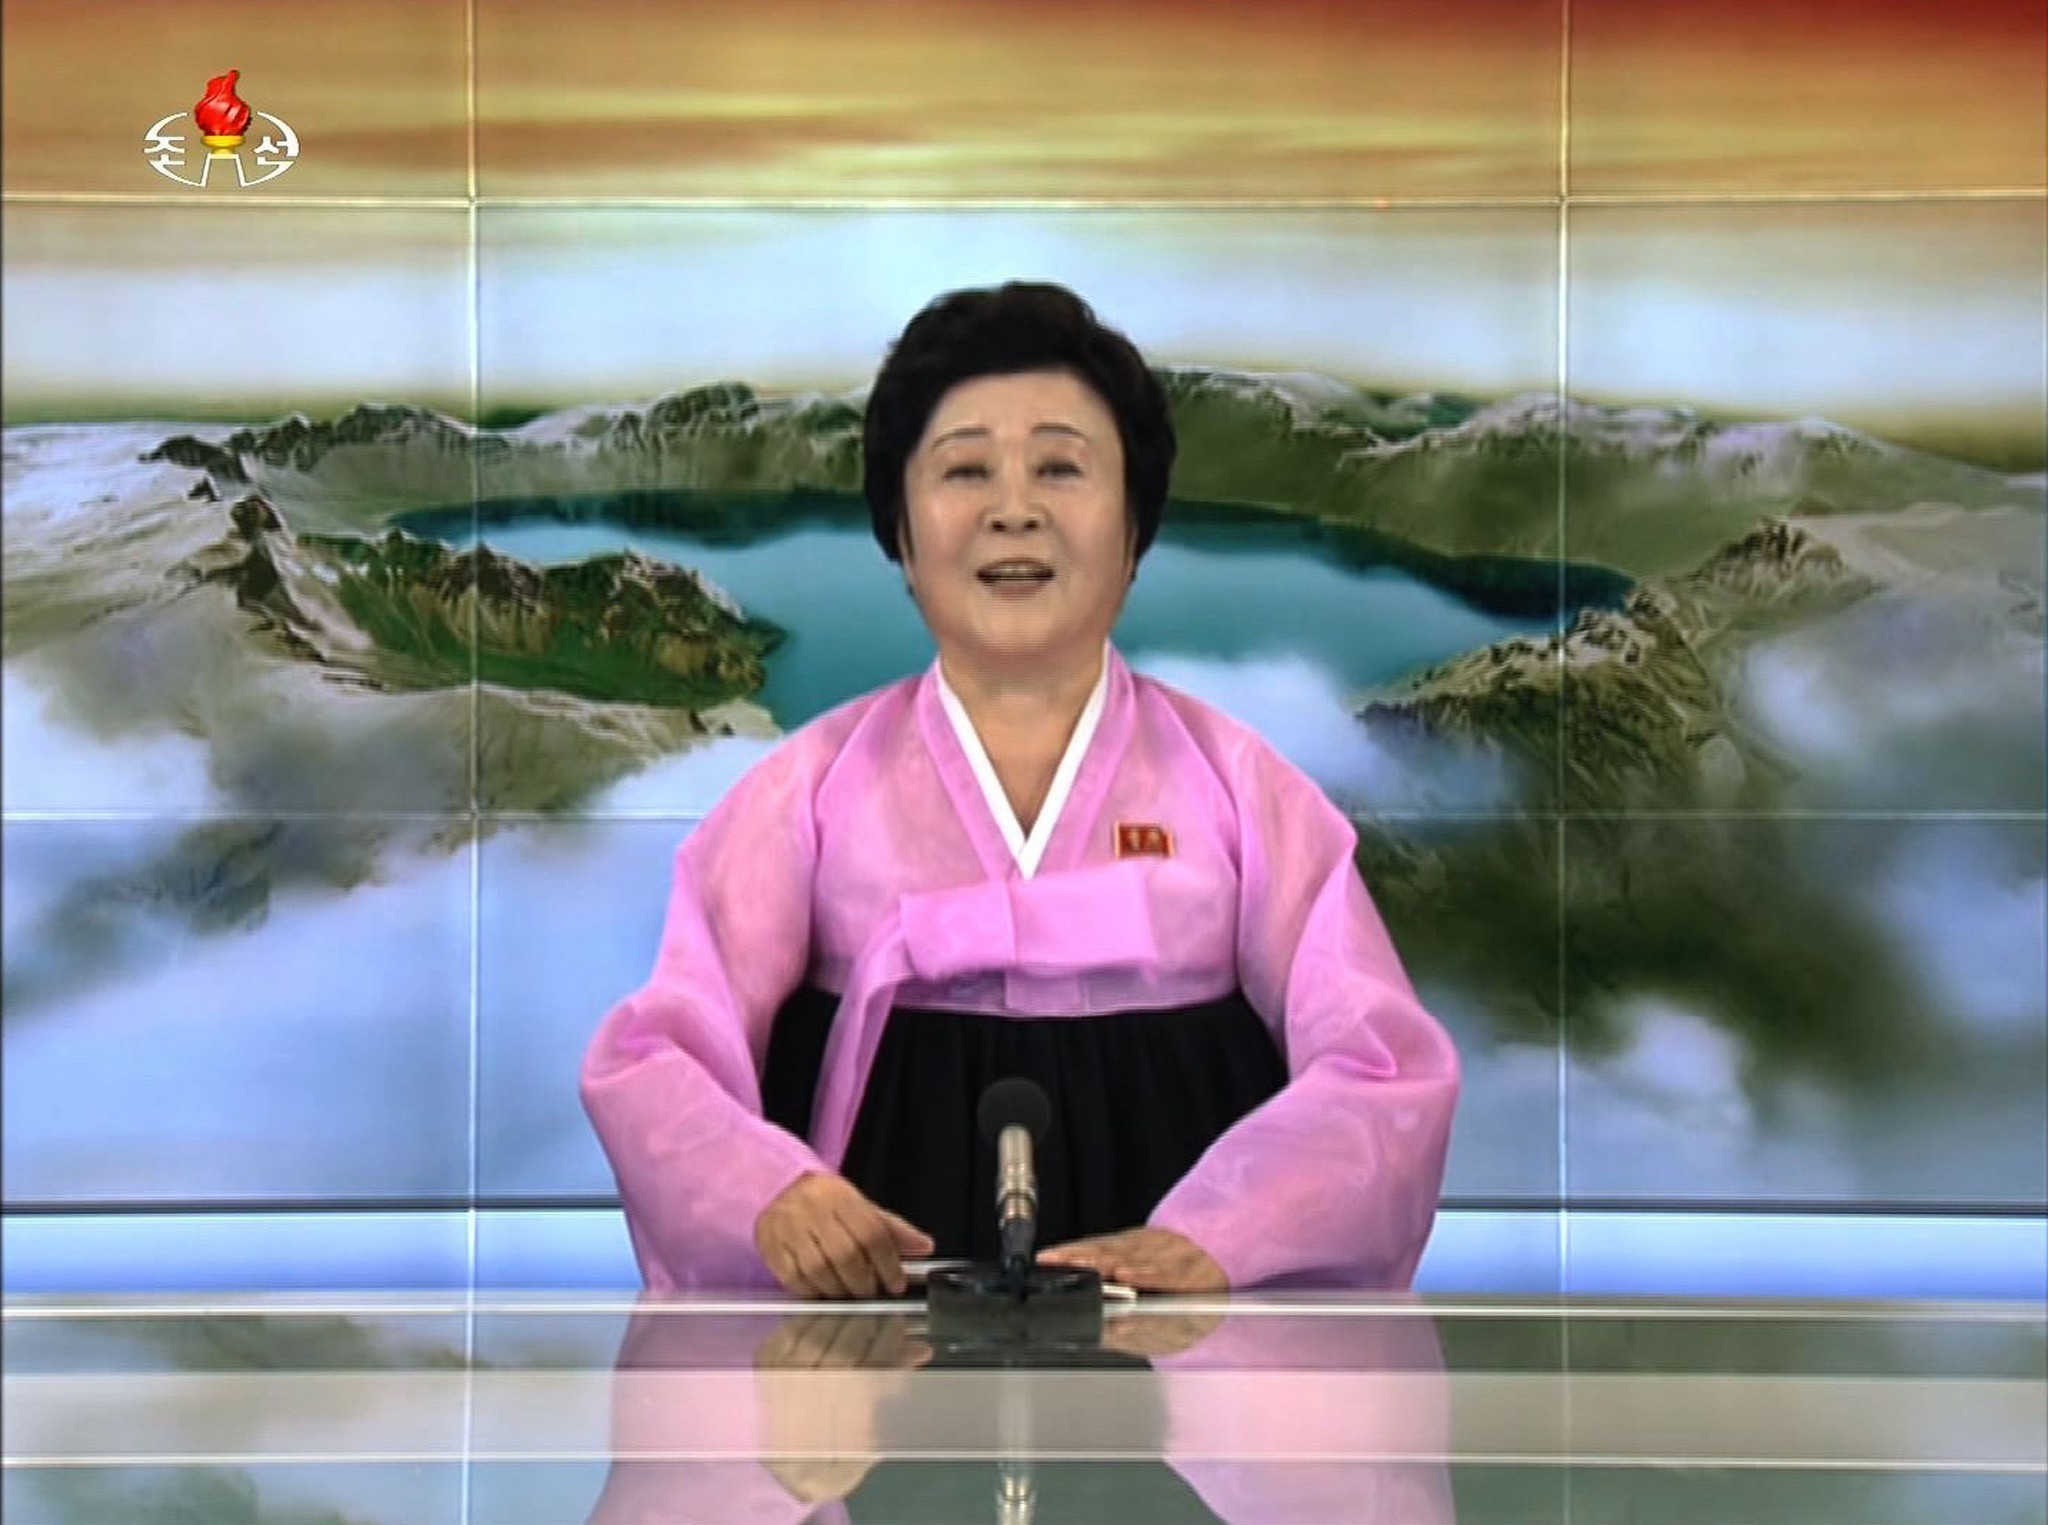 Count on North Korea's 'pink lady' broadcaster for joyful news of bombs and missiles